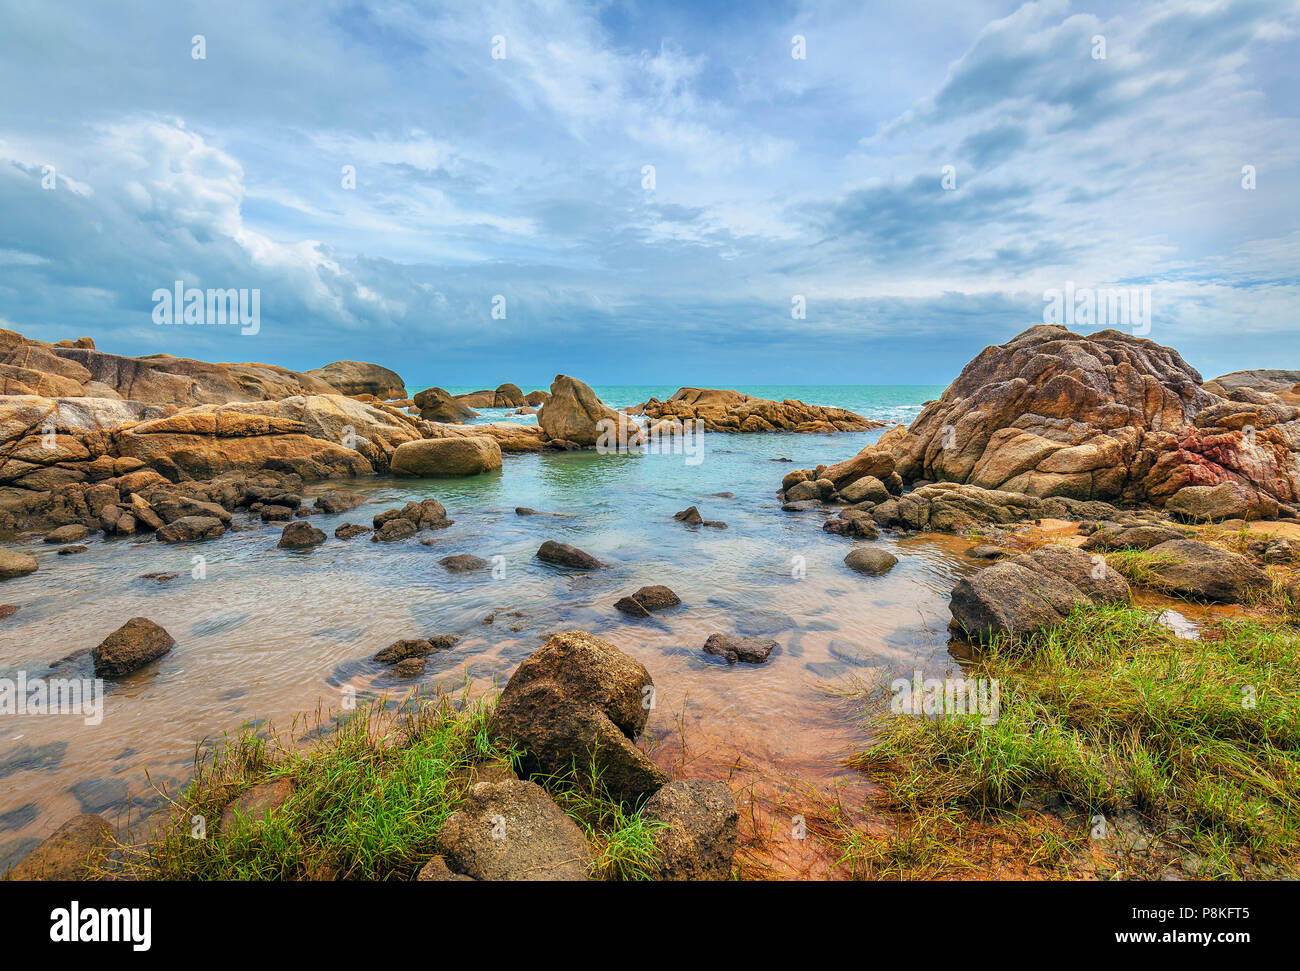 Early morning on the island of Koh Samui in Thailand. - Stock Image